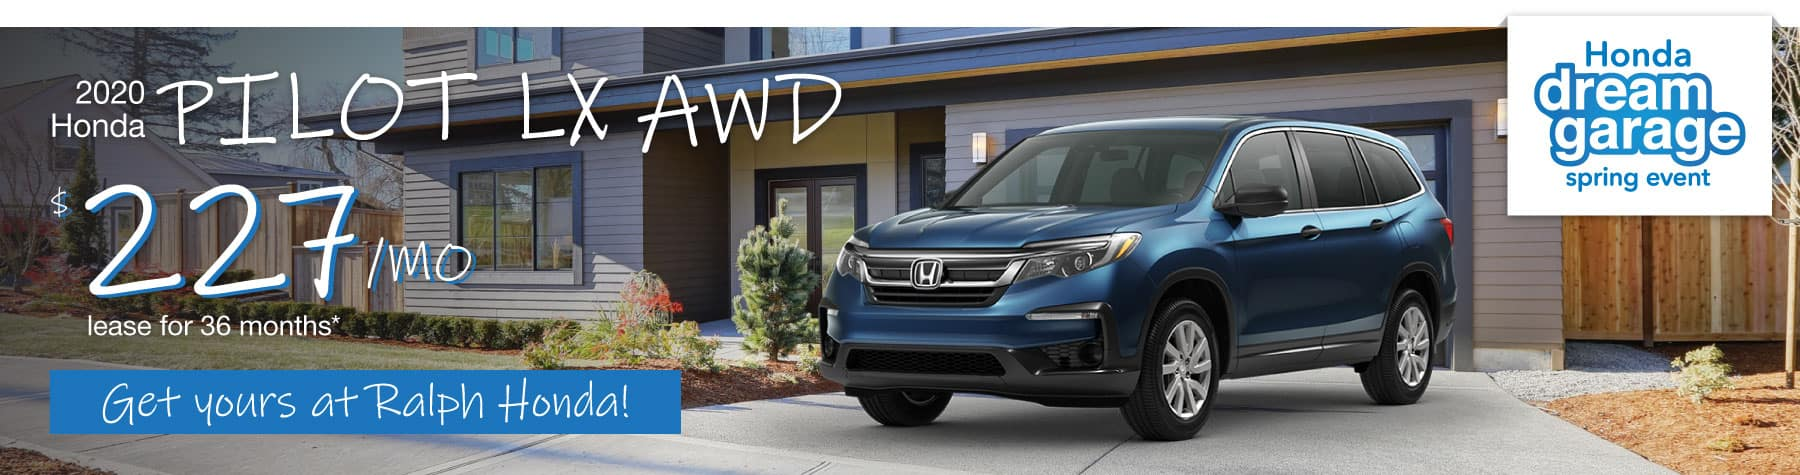 Header Photo of the 2020 Honda Pilot